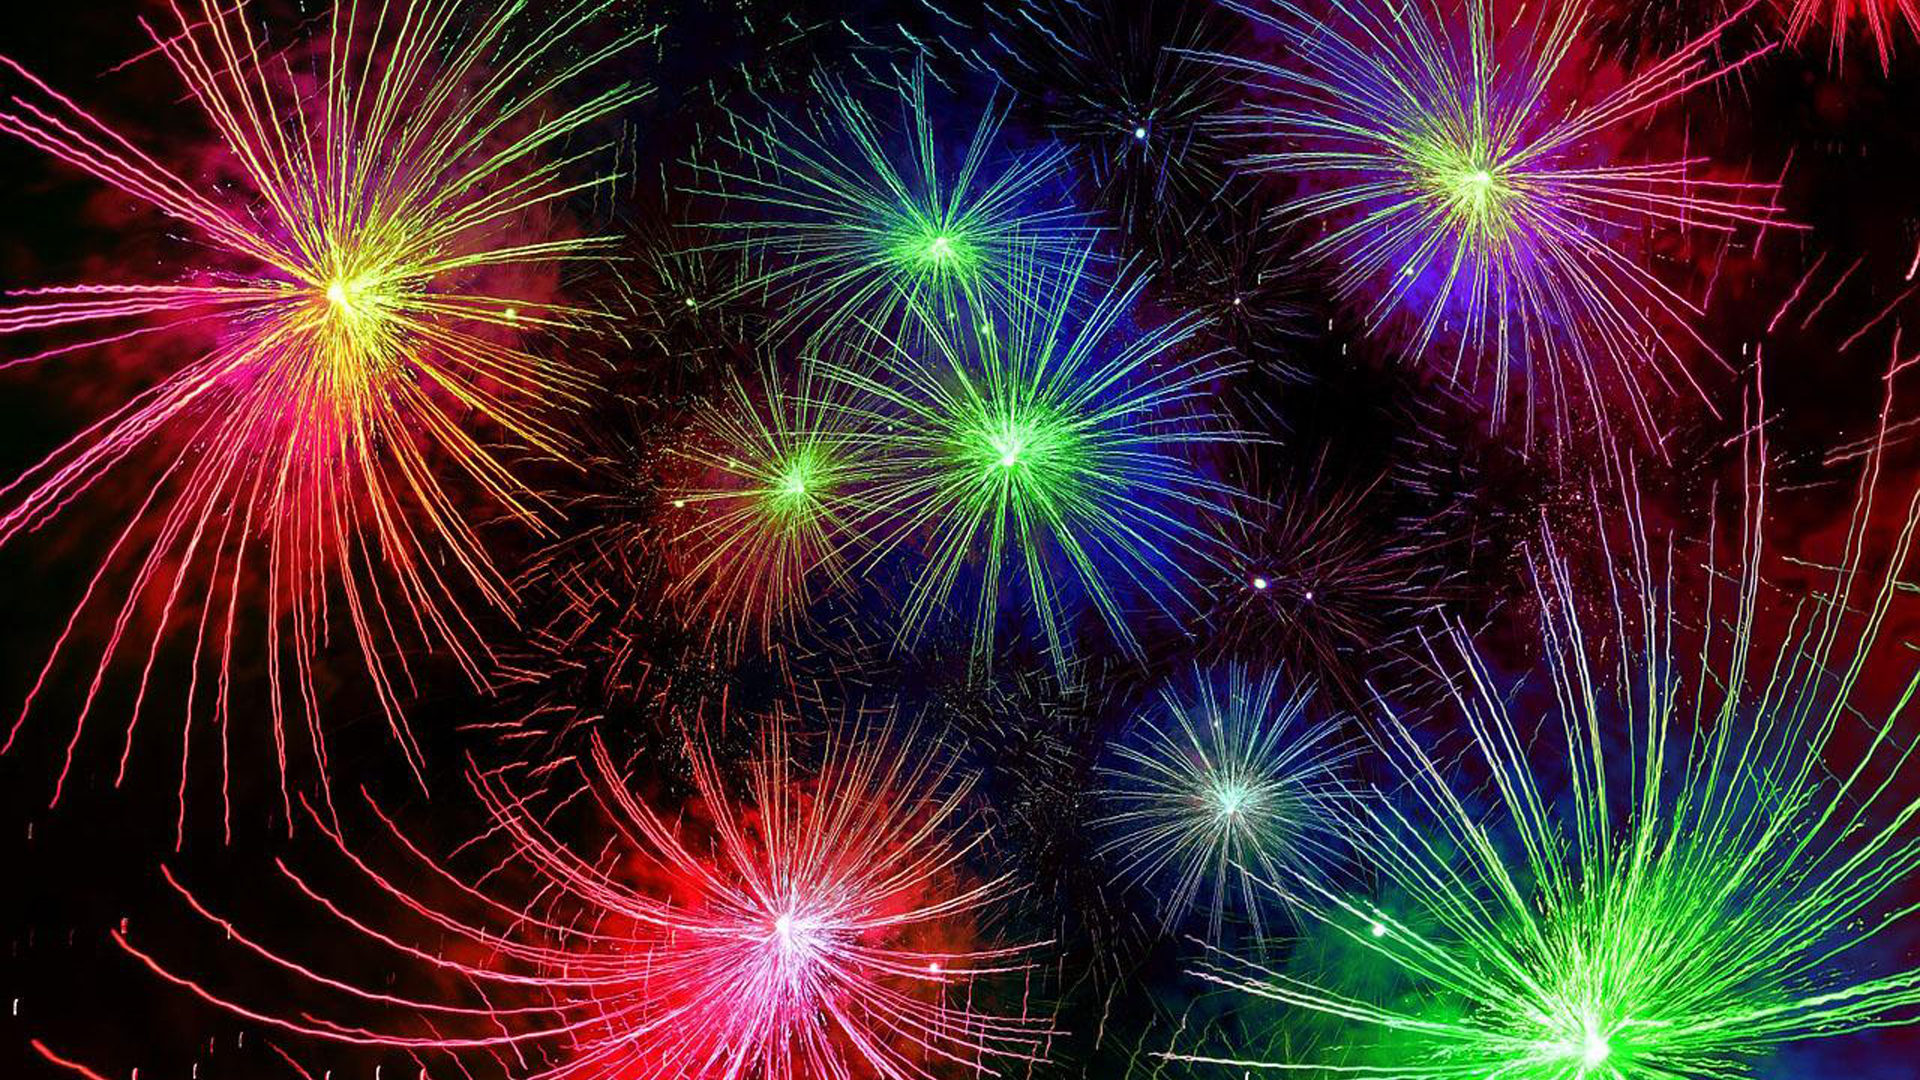 Animated Wallpaper For Tablet Happy New Year Live New Years Fireworks Red Blue Yellow